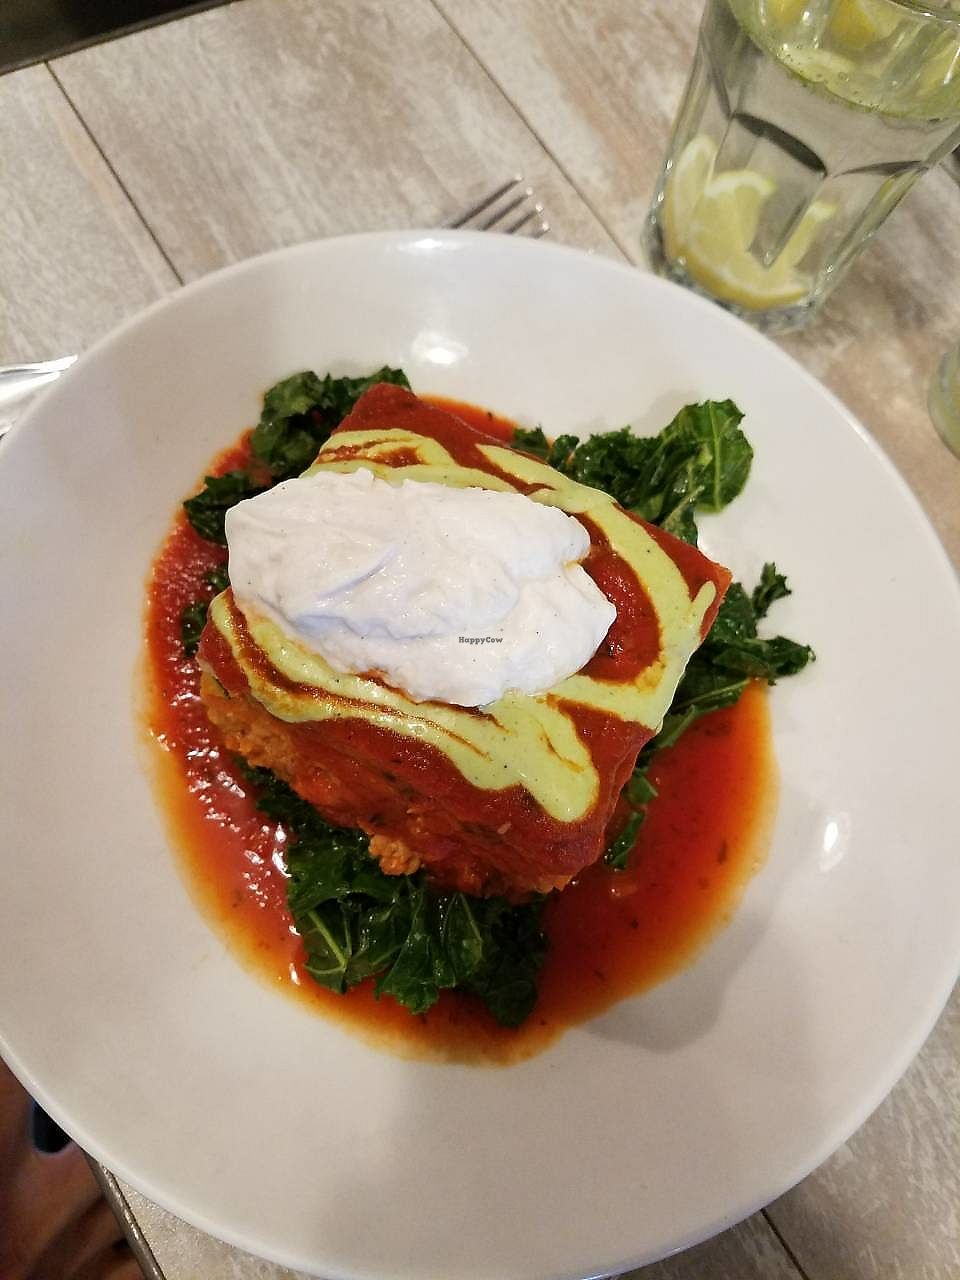 """Photo of Candle Cafe West  by <a href=""""/members/profile/Katyathevegan"""">Katyathevegan</a> <br/>Sweet potato lasagna-- Their non-dairy cheese was delicious! I was so impressed! <br/> October 16, 2017  - <a href='/contact/abuse/image/31715/315724'>Report</a>"""